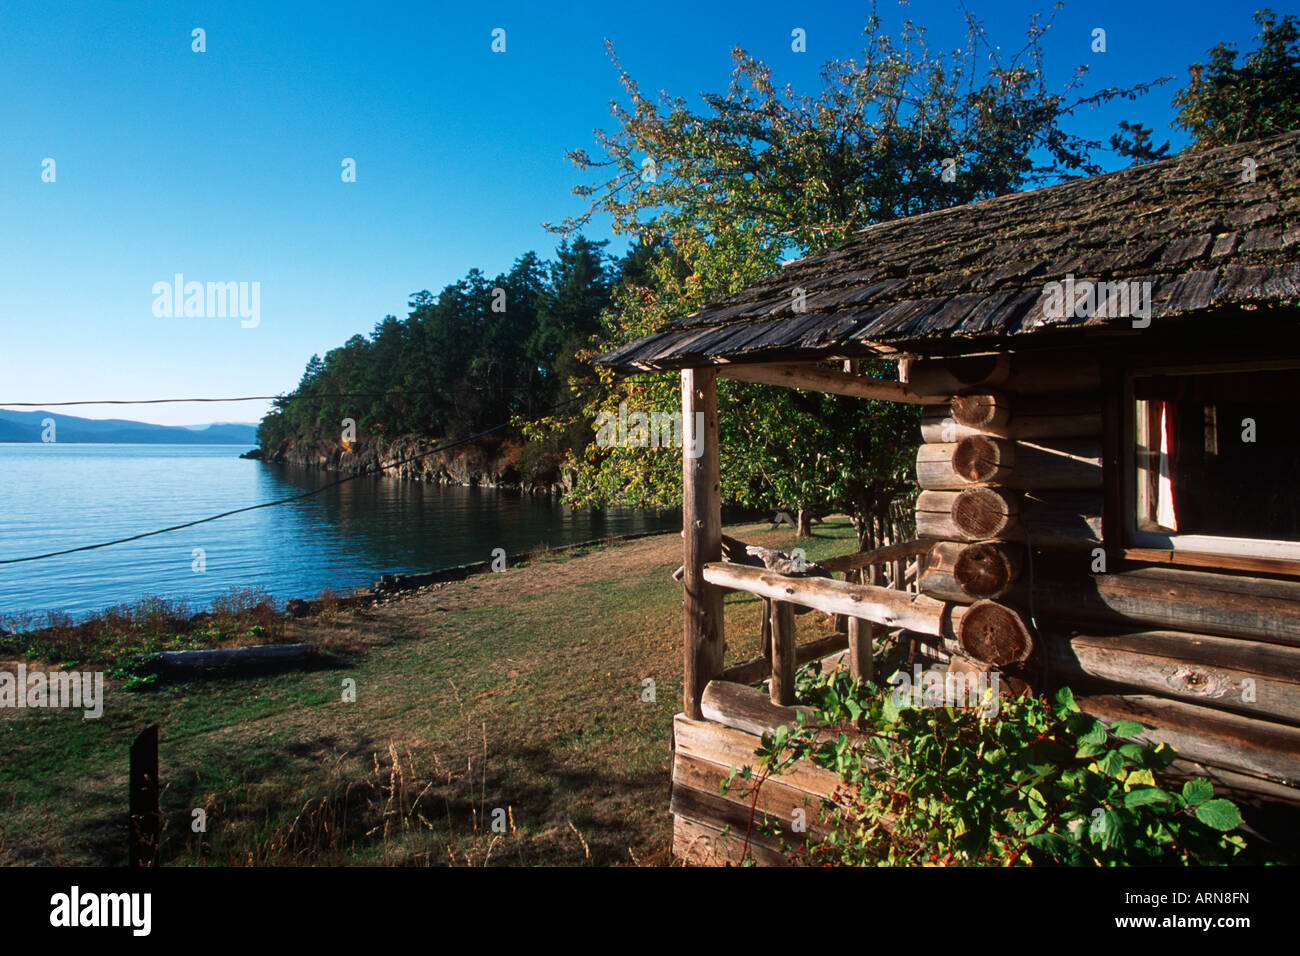 Charmant Roesland, Pender Island, Gulf Islands National Park, British Columbia,  Canada